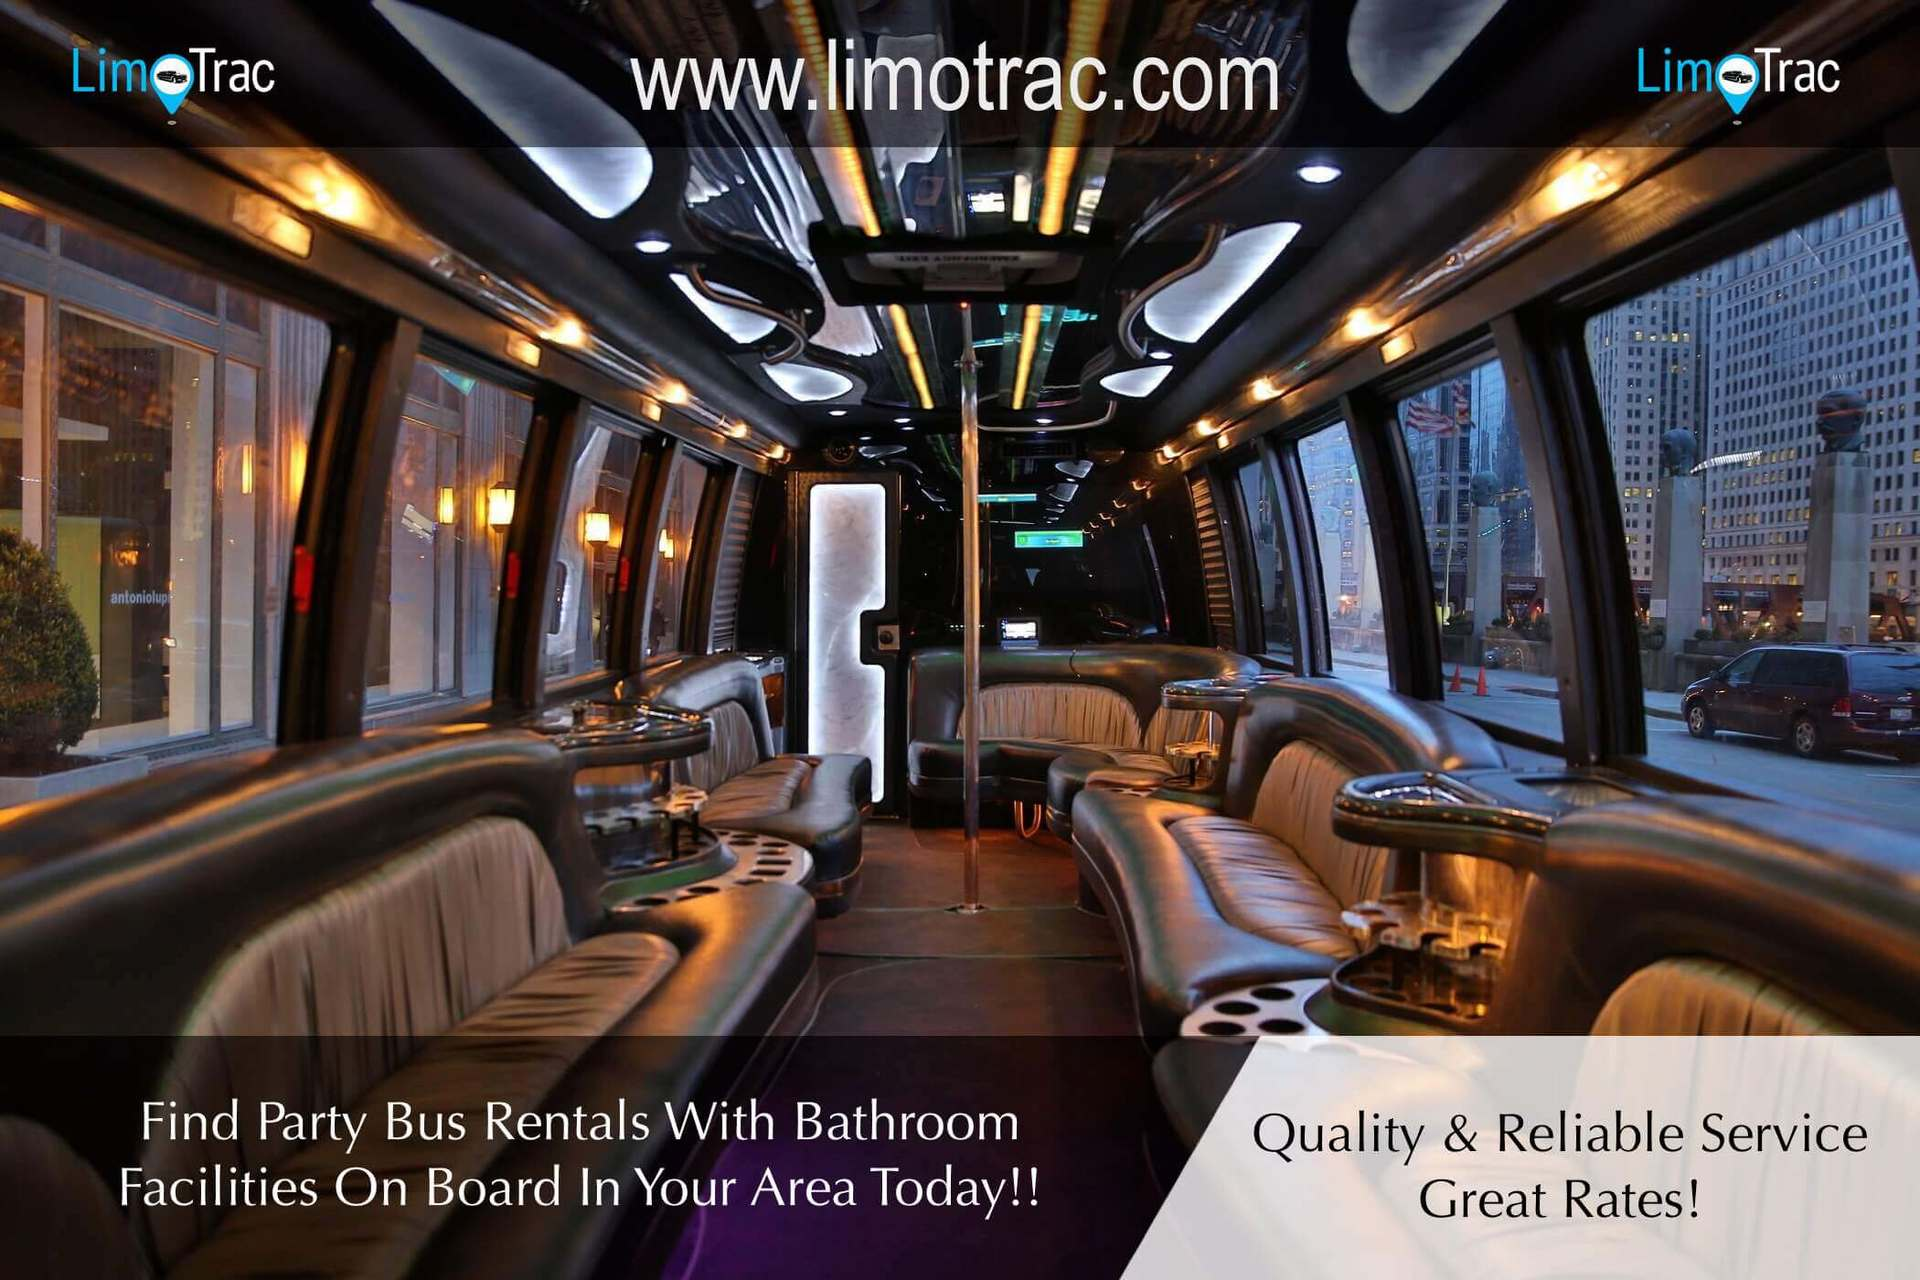 Avenue Near Me >> Party Bus Rental New York City | Bathroom - Restroom on board